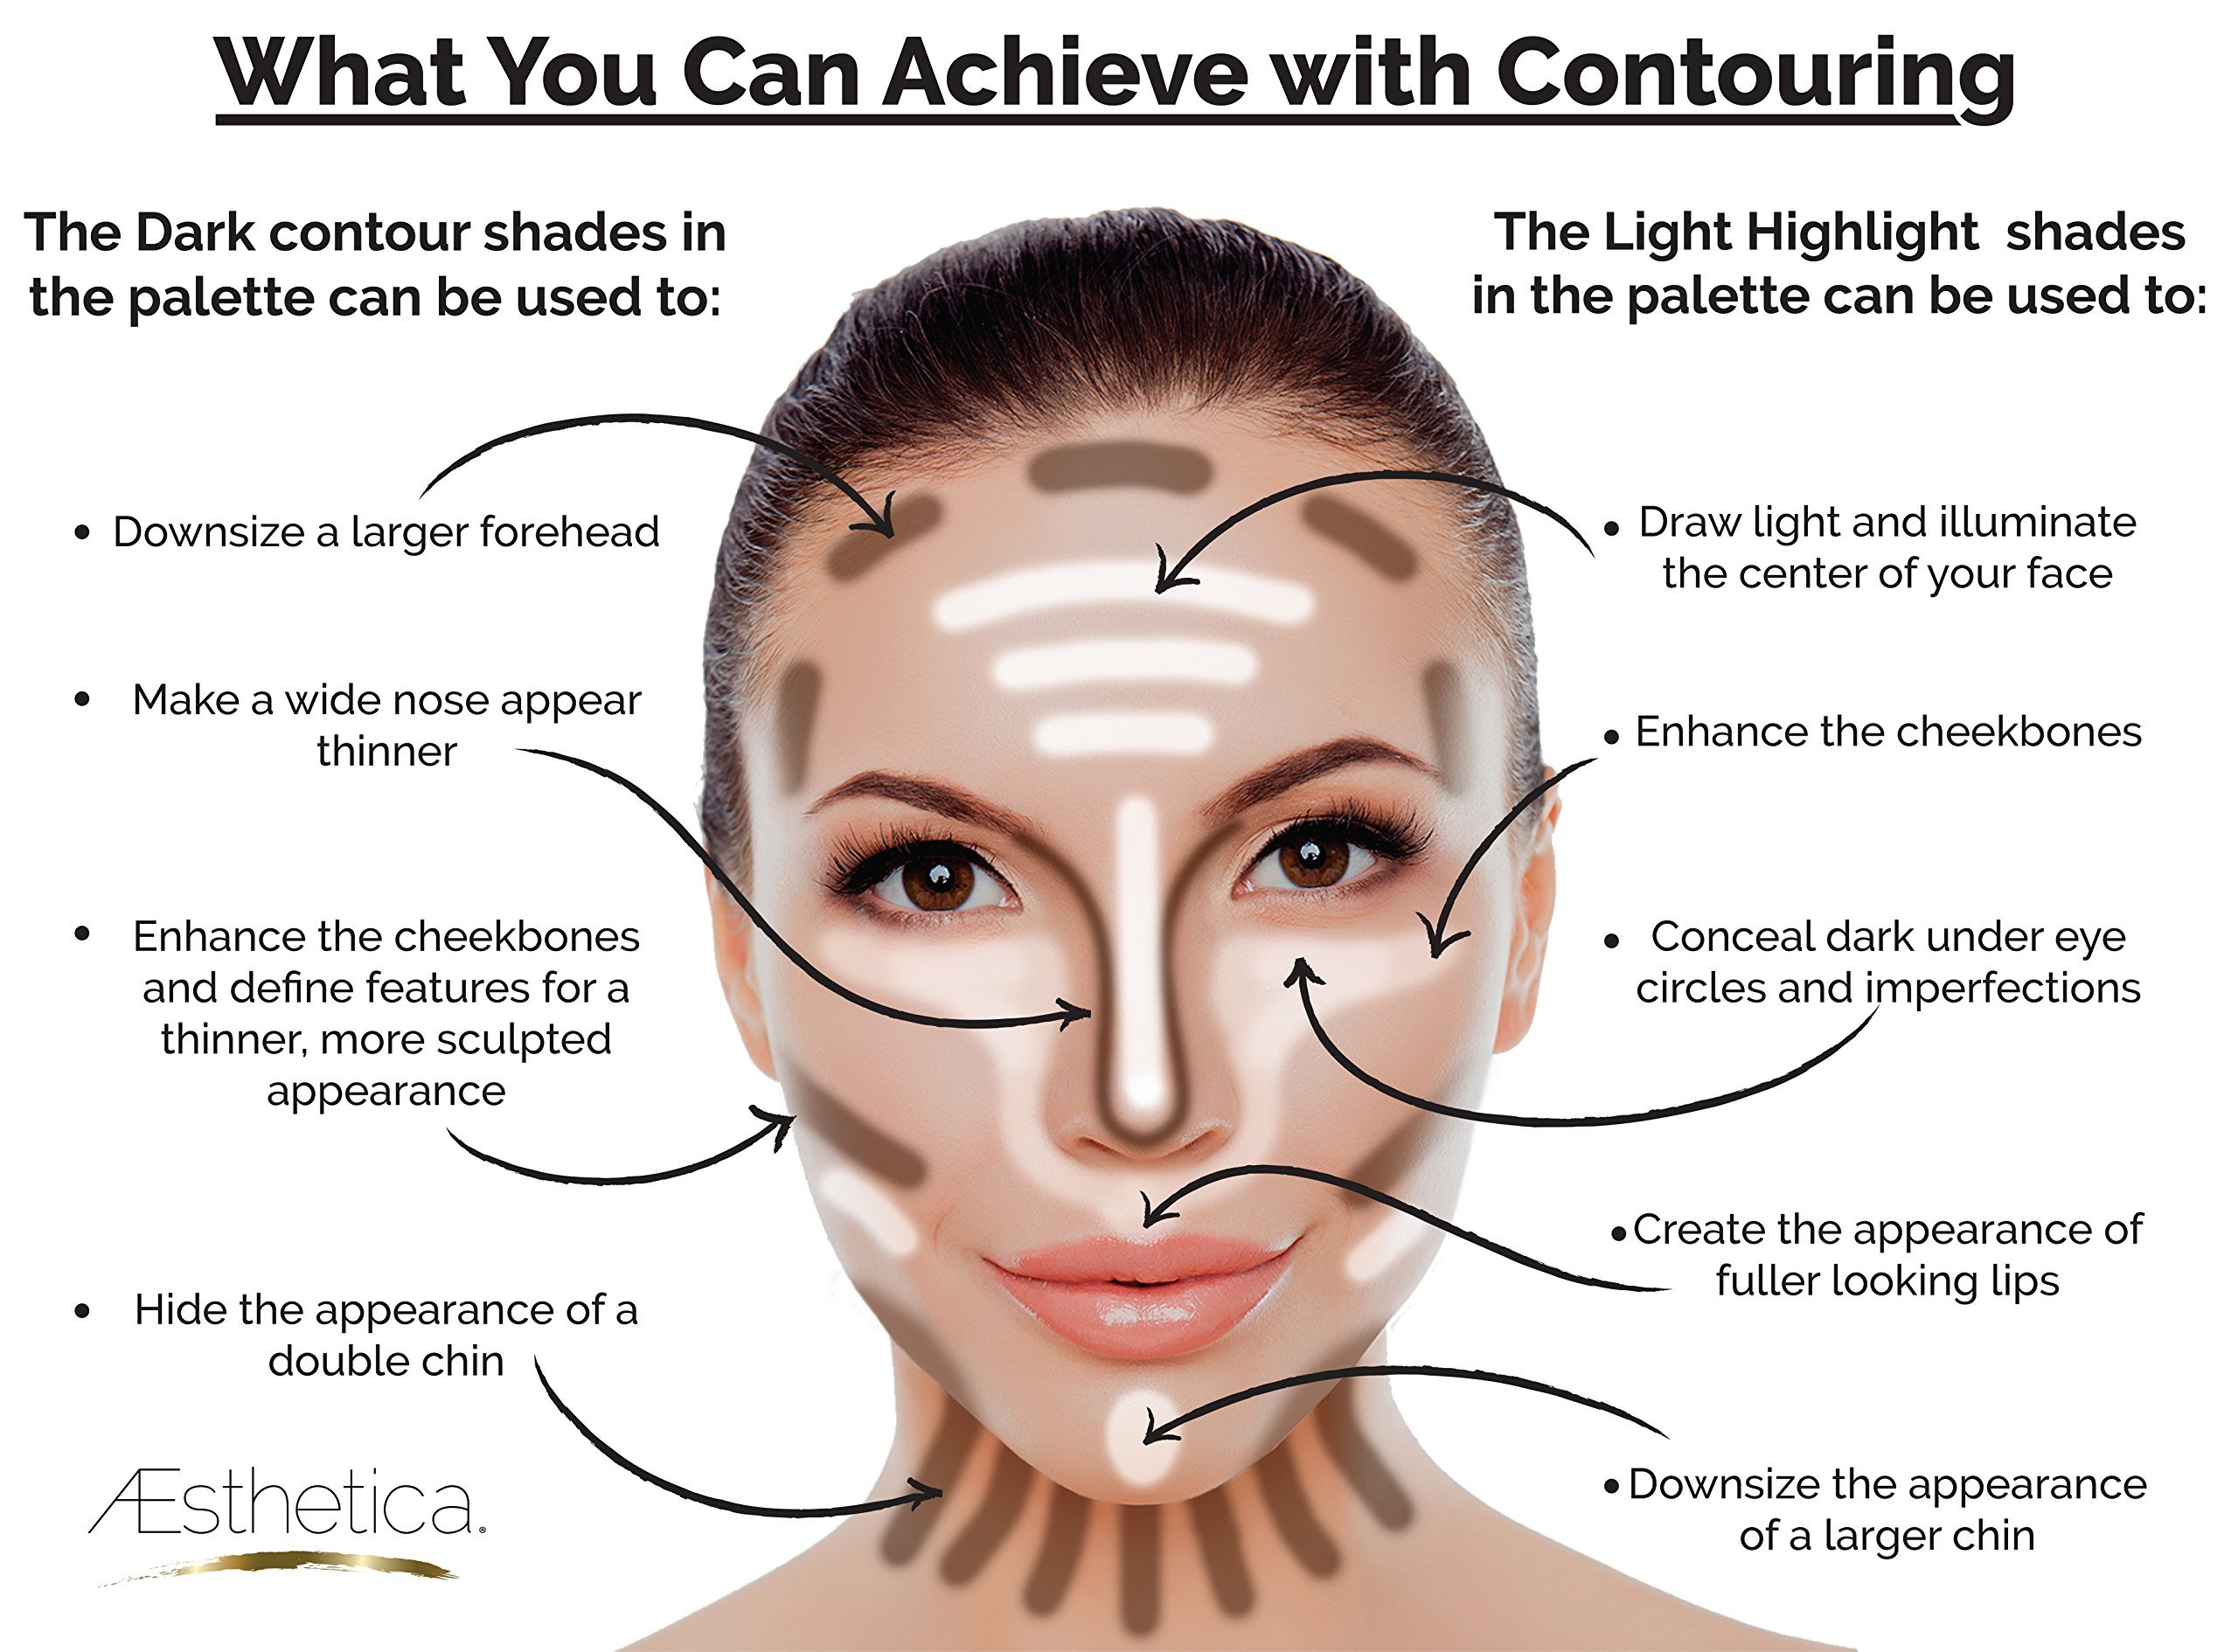 Aesthetica-Cosmetics-Cream-Contour-and-Highlighting-Makeup-Kit-Contouring-FoundationConcealer-Palette-Vegan-Cruelty-Free-Hypoallergenic-Step-by-Step-Instructions-Included